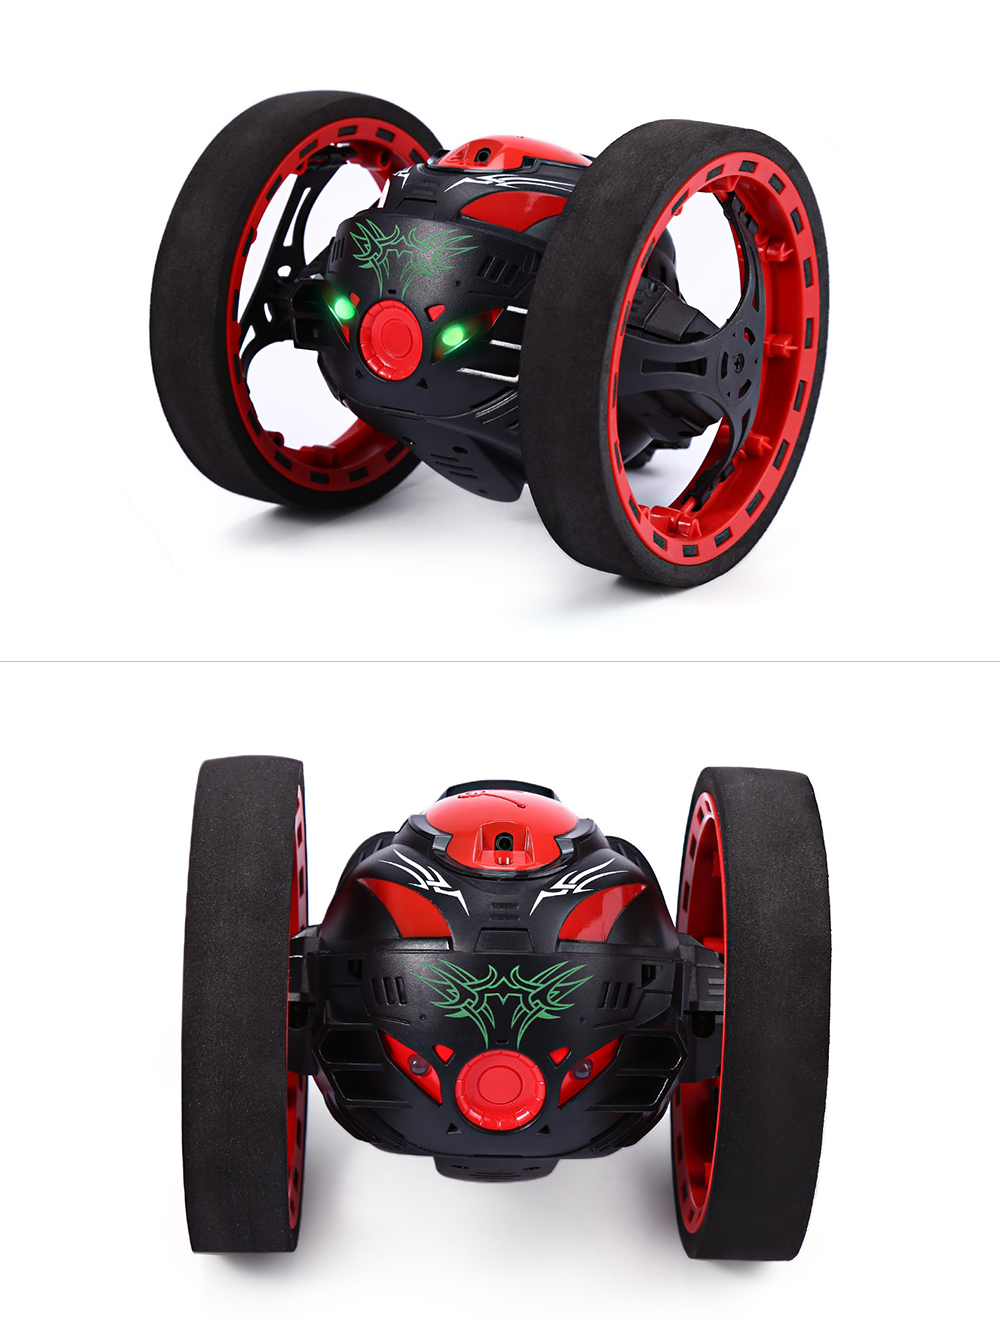 remote control cars aeProduct.getSubject()